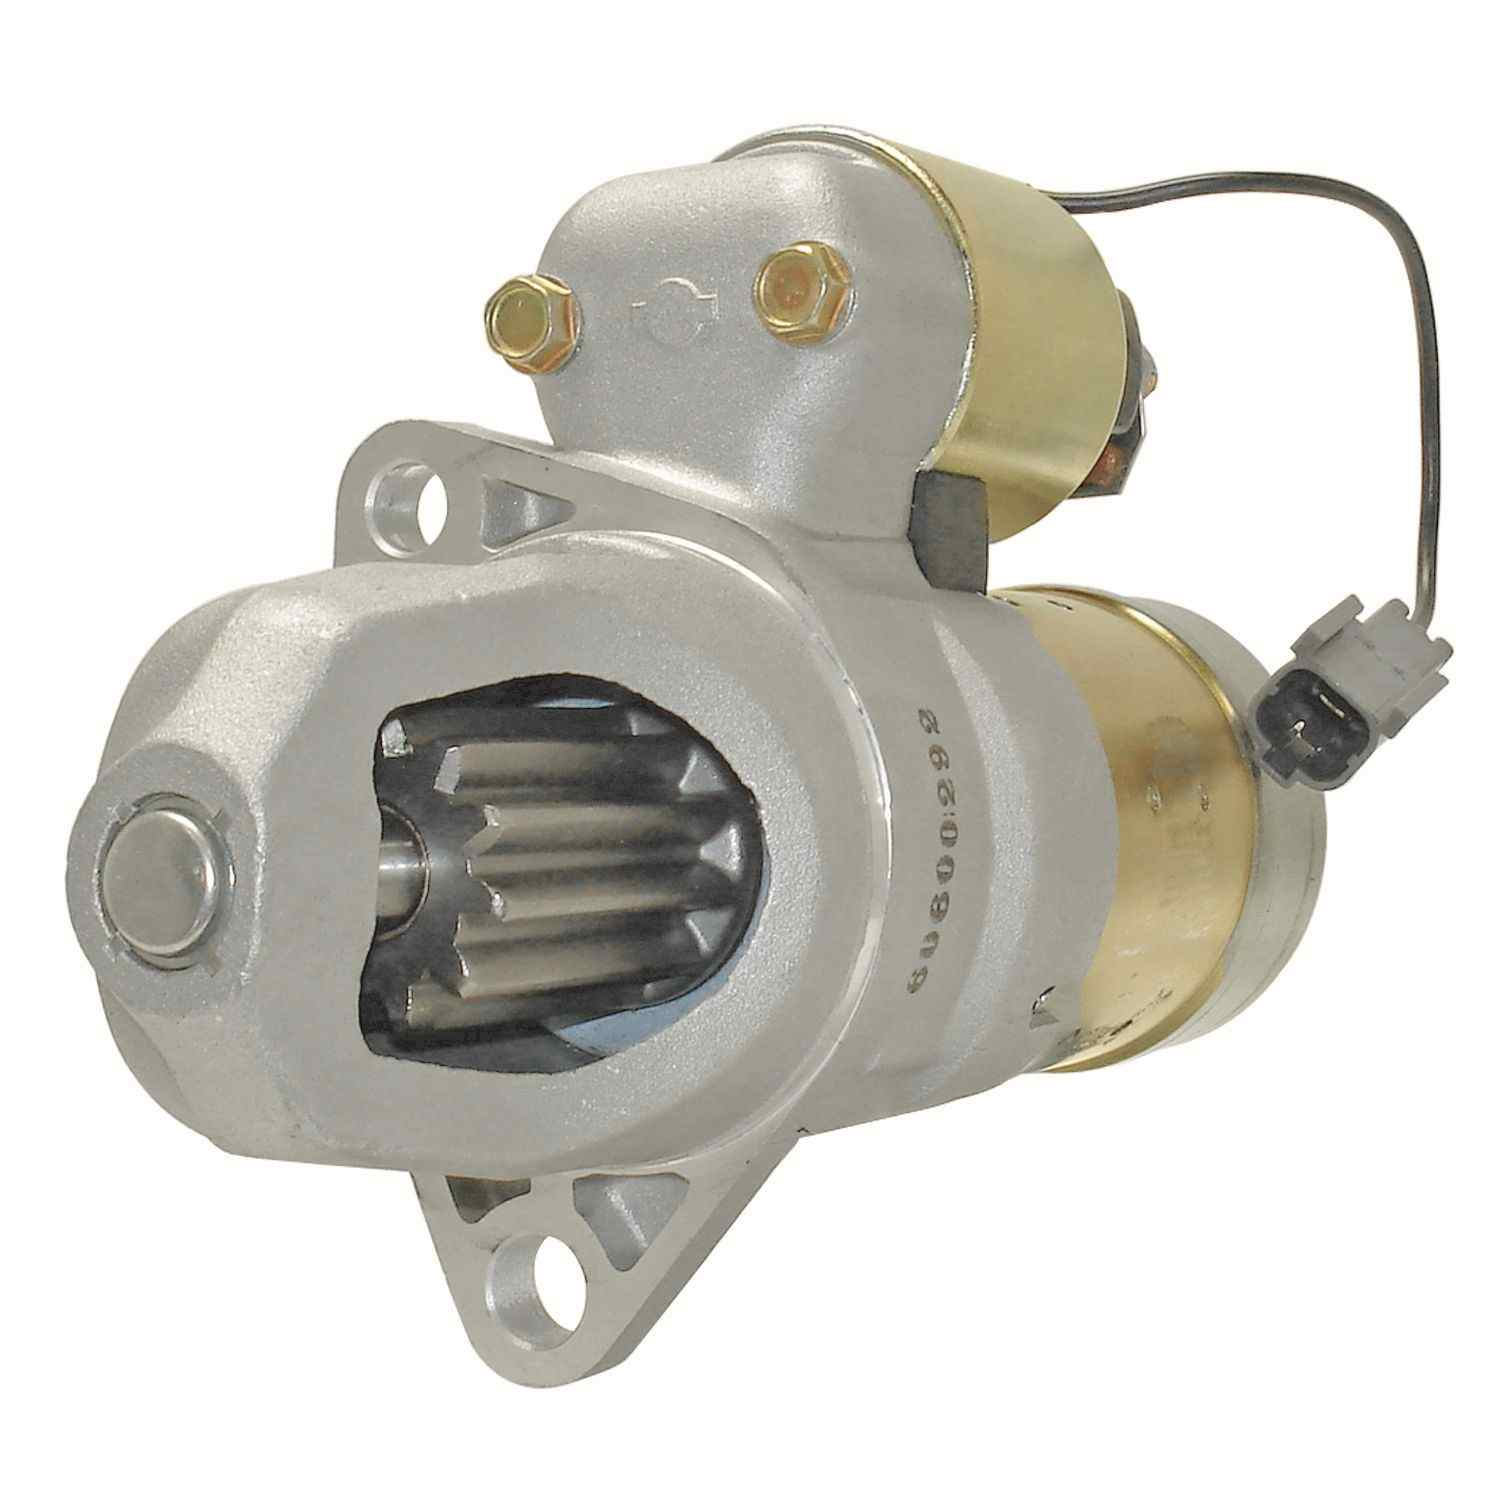 ACDELCO GOLD/PROFESSIONAL - Reman Starter Motor - DCC 336-1716A